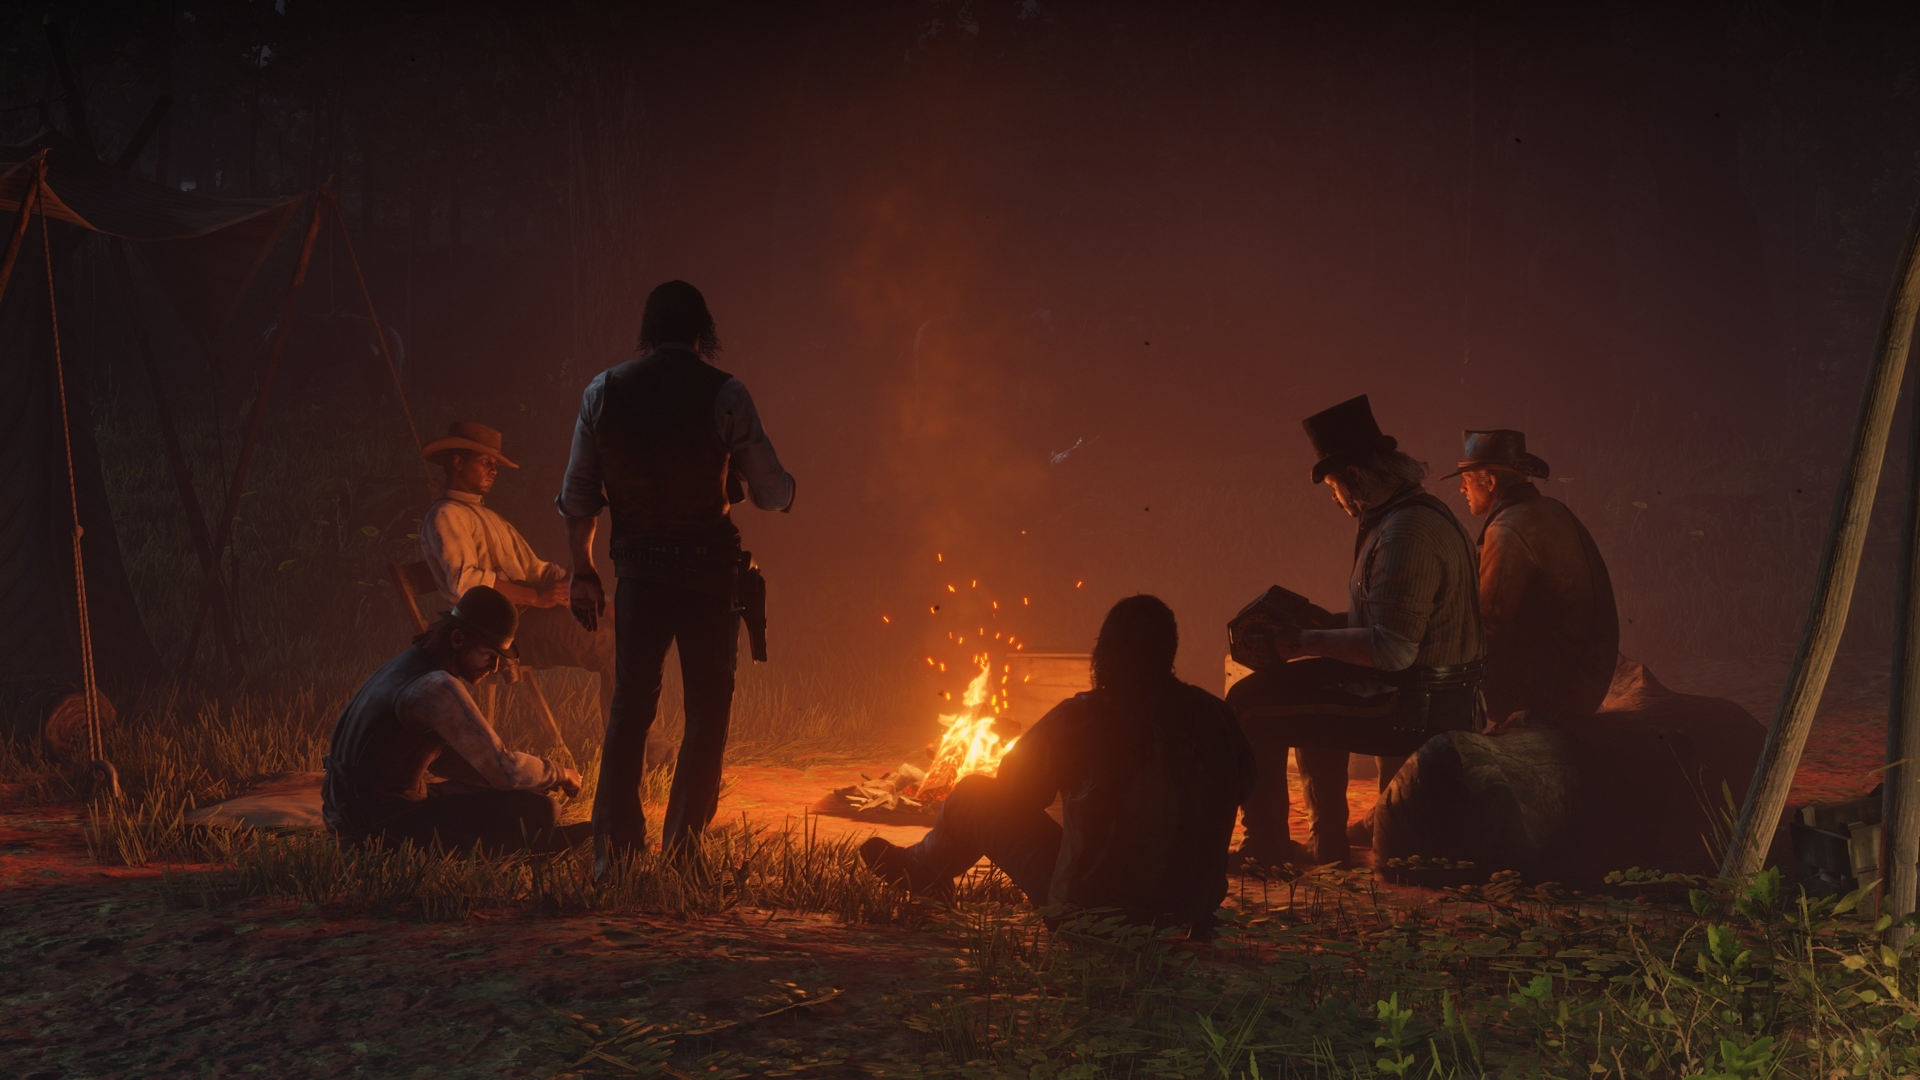 Red Dead Redemption 2 2513402 Hd Wallpaper Backgrounds Download